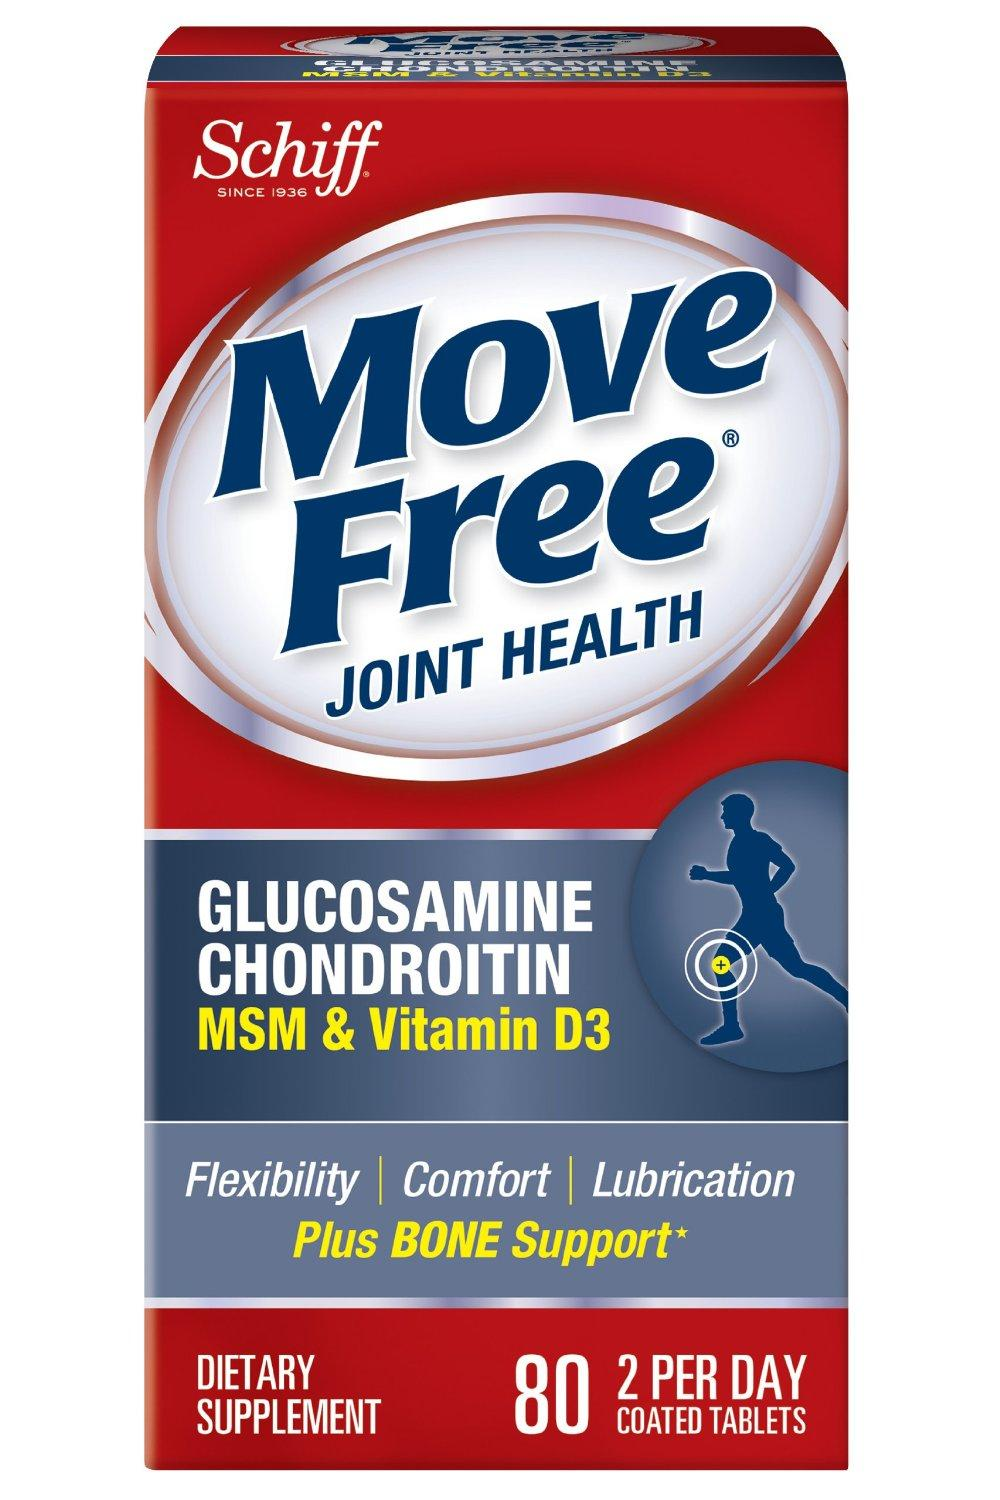 Move Free Joint Health Advanced Plus MSM & Vitamin D3 with Glucosamine+Chondroitin -Plus Extra Bone Support, 80 tablets